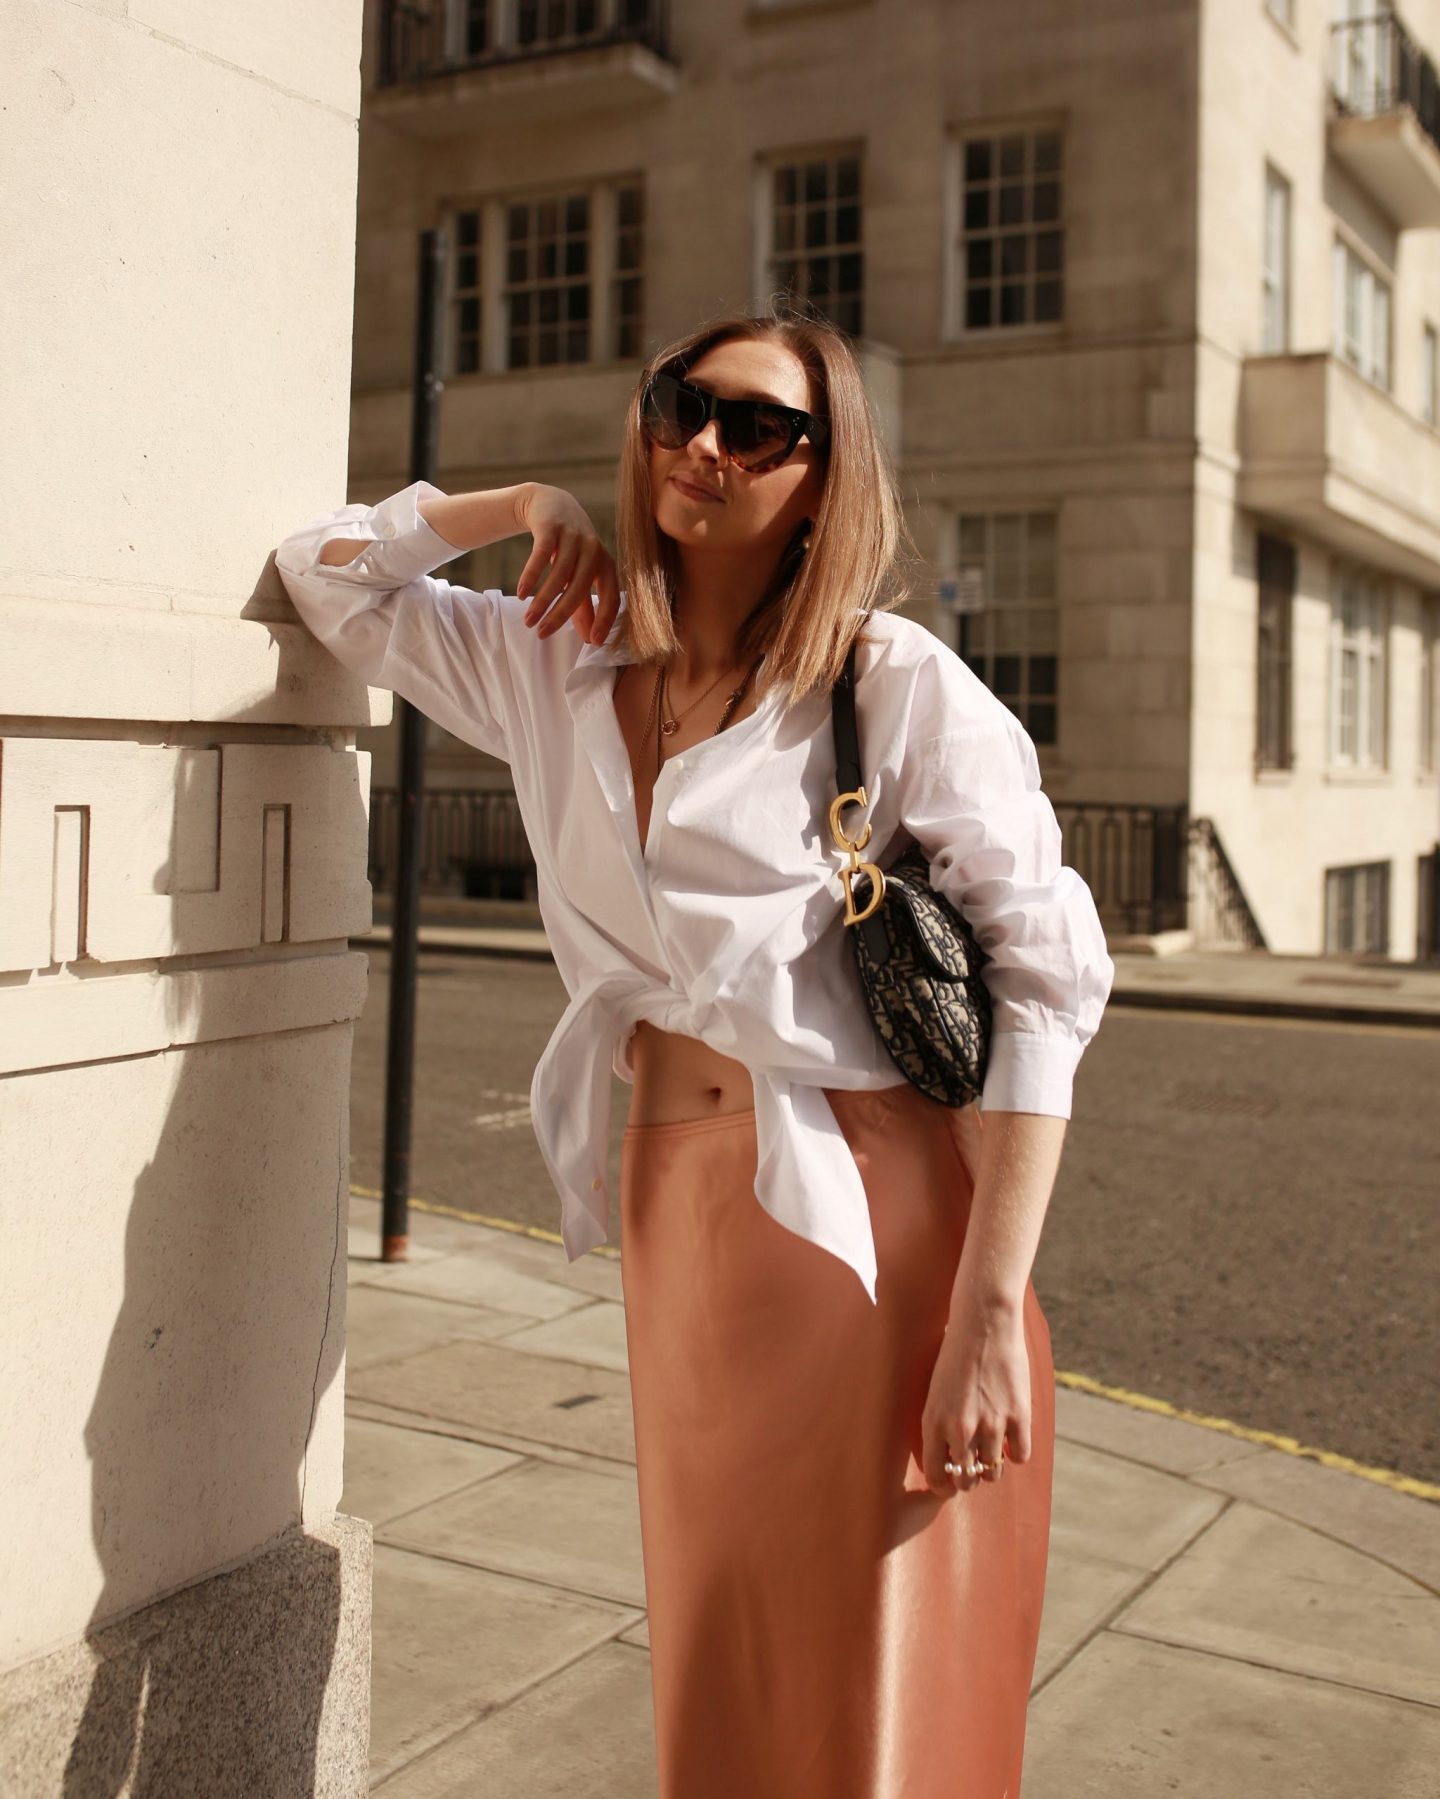 Lady wearing silk slip with oversized white shirt, strappy sandals and Dior saddle bag. Photoshoot in London Covent Garden.